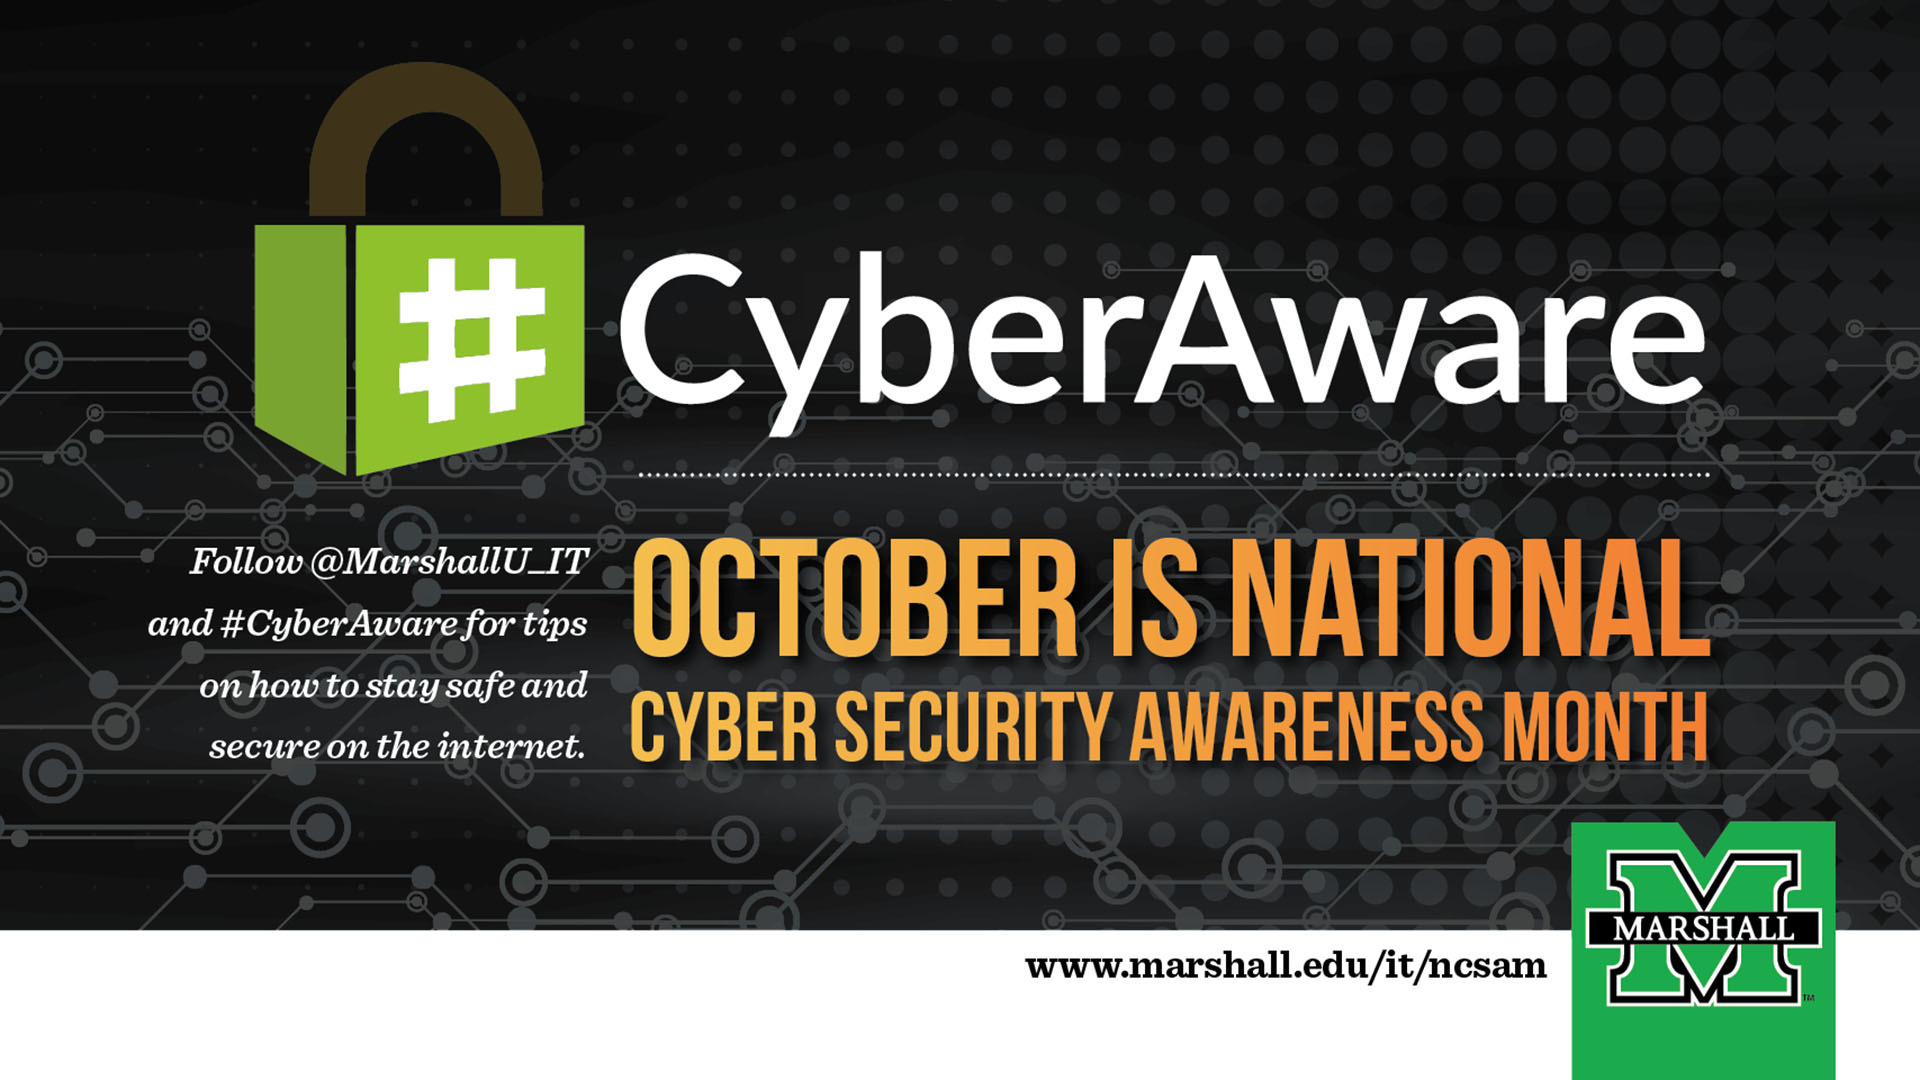 Marshall IT department to promote cyber security awareness